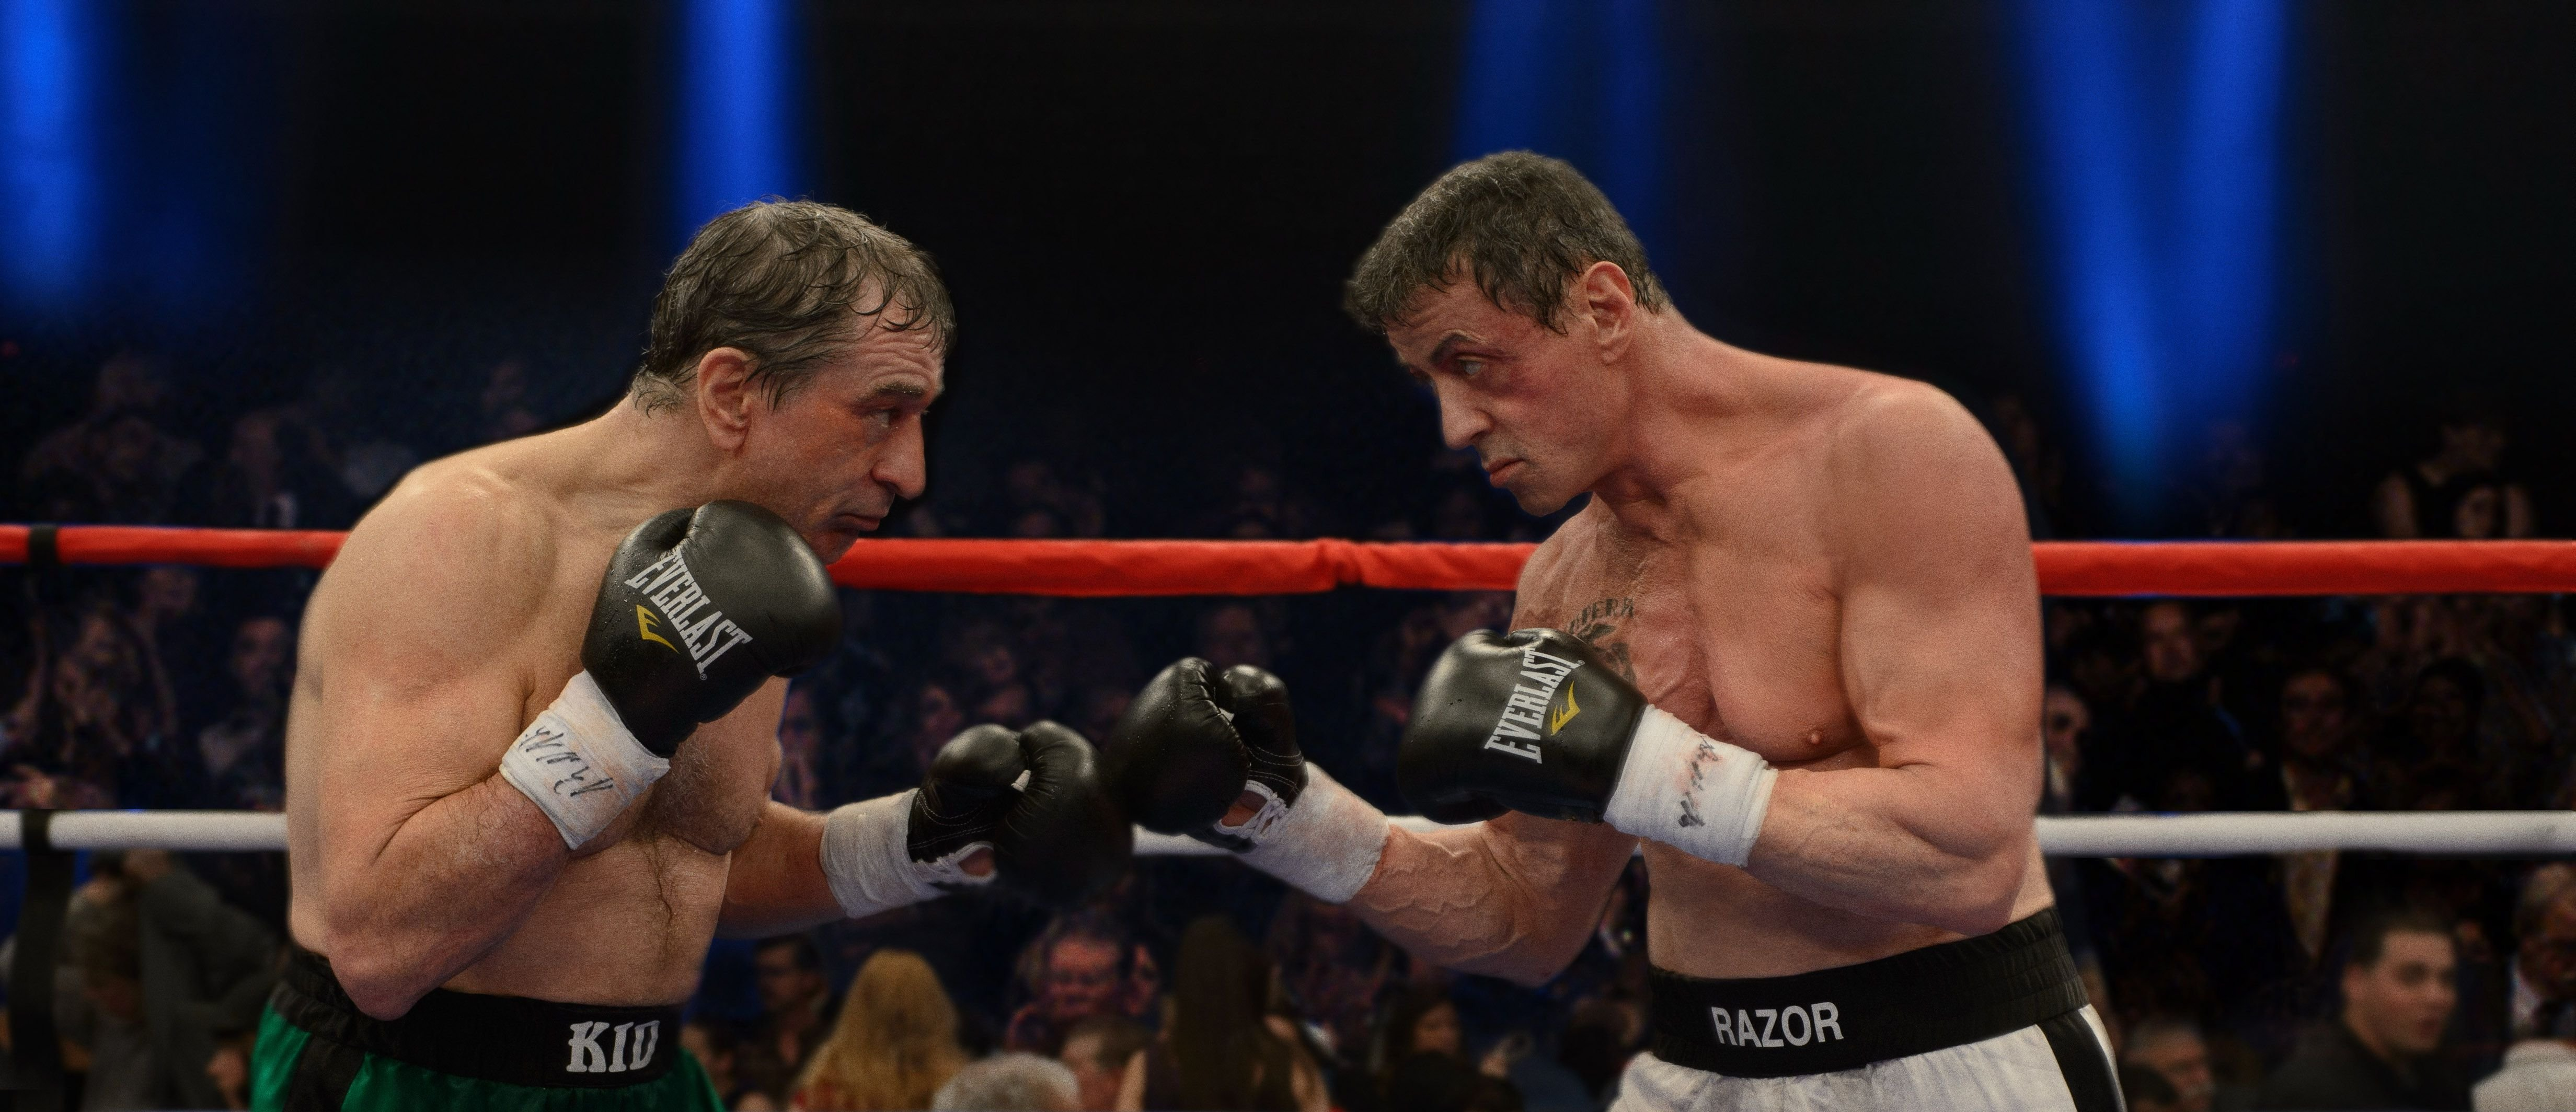 An image from Grudge Match